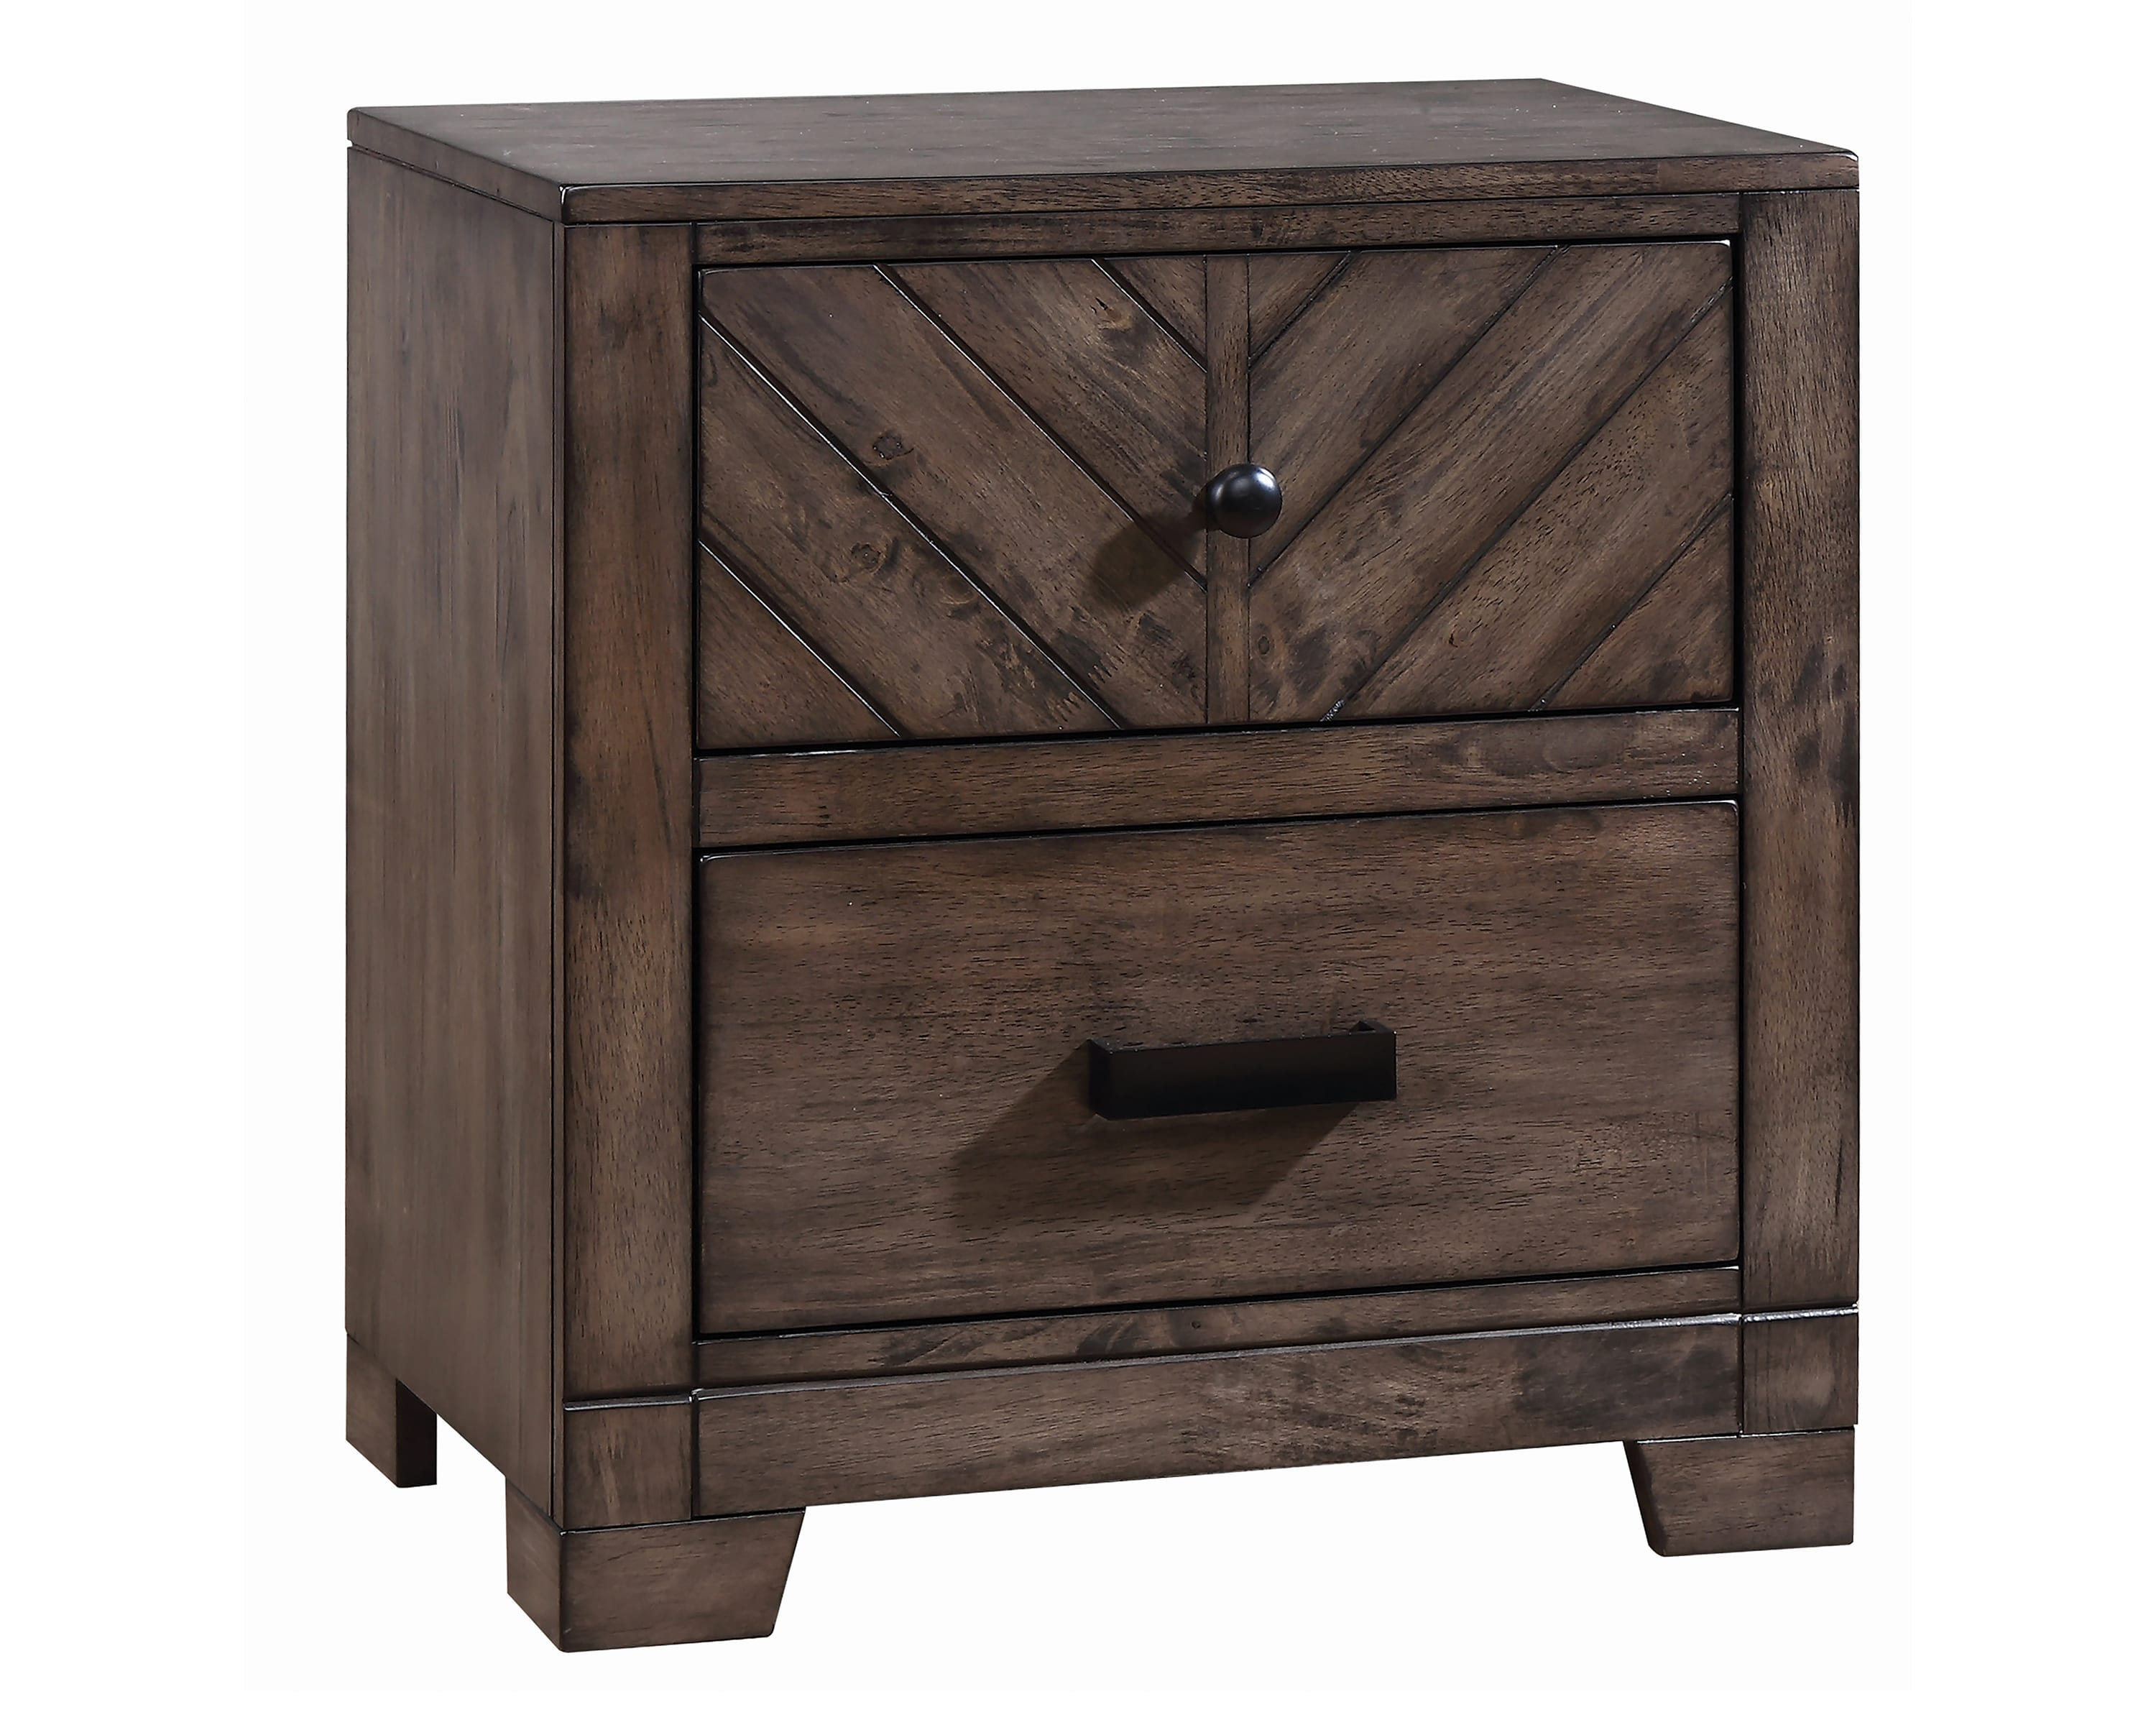 lawndale rustic nightstand coaster fine furniture bedroom end tables nightstands diy black pipe table slate grey coffee easy pallet contemporary side entrance cocktail edmonton